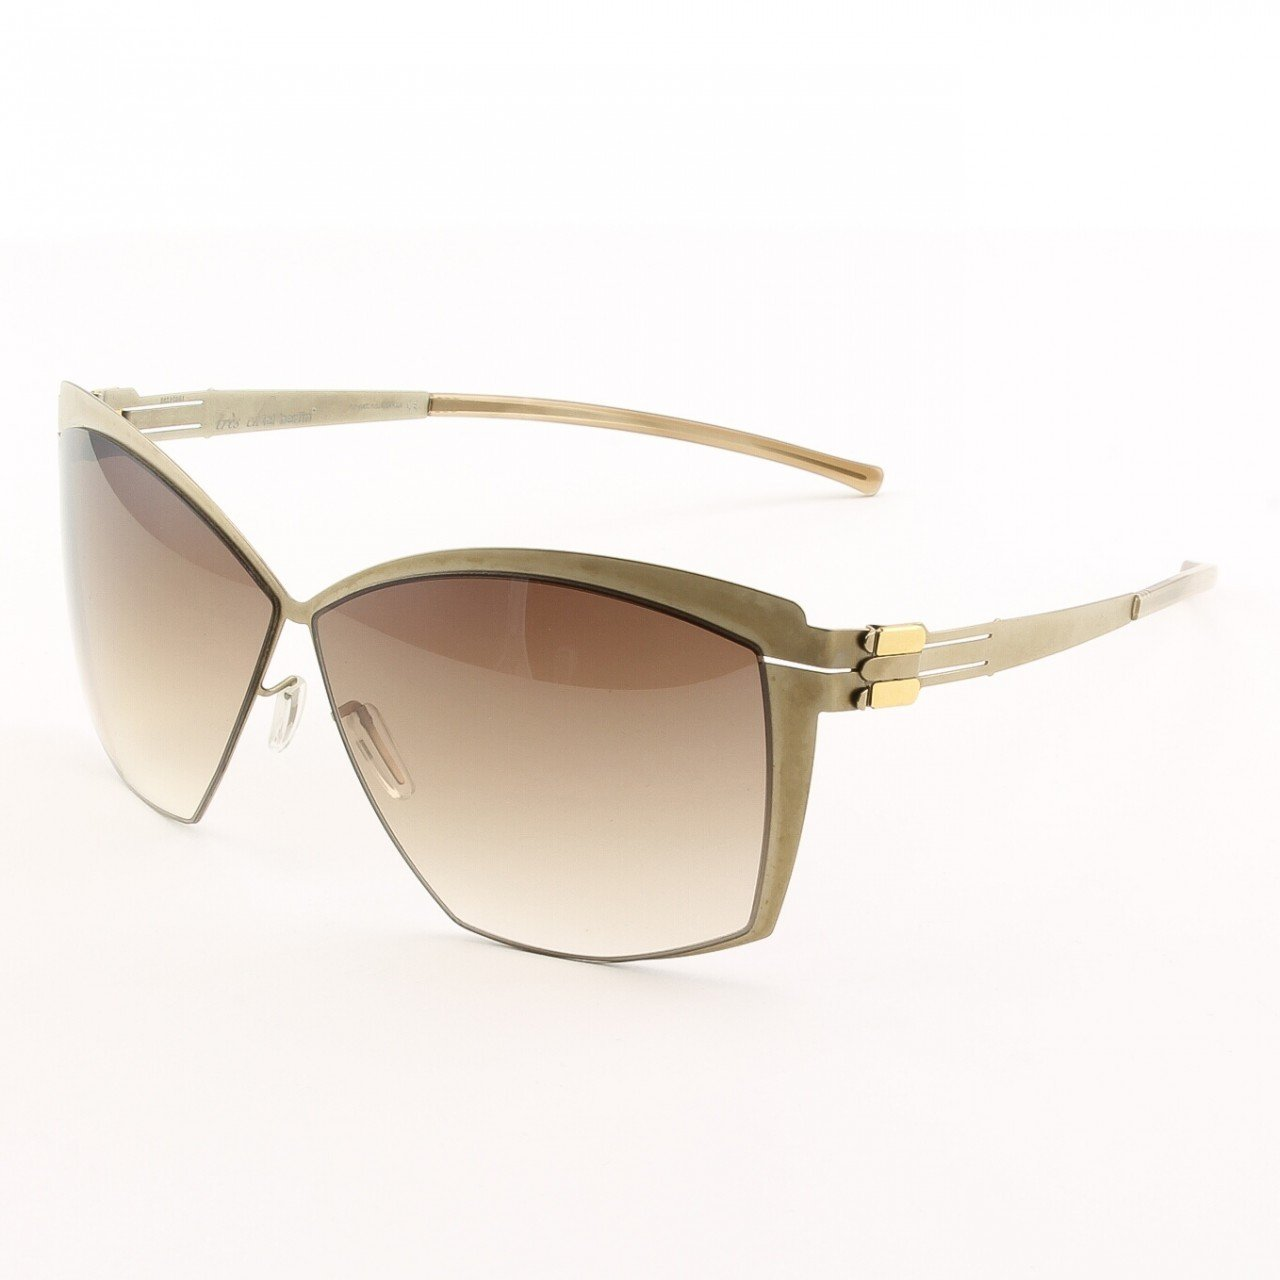 ic! Berlin Provocante Sunglasses Col. Bronze with Brown Lenses